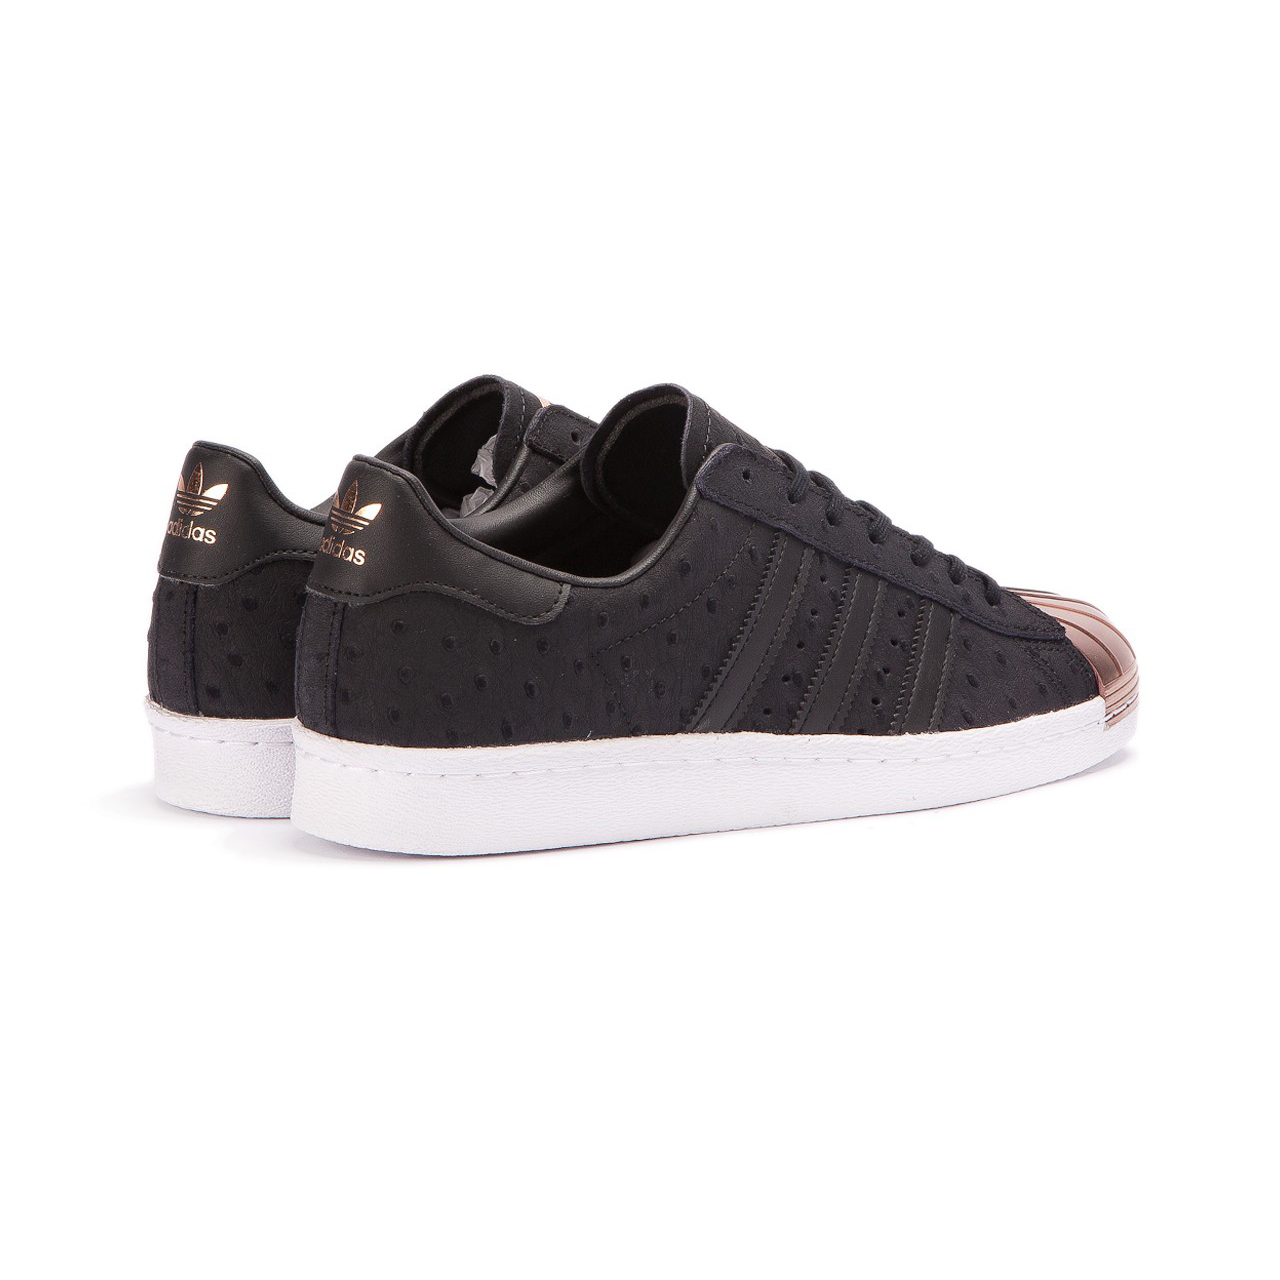 adidas Superstar 80s Metal Toe W Core Black Vapour Grey